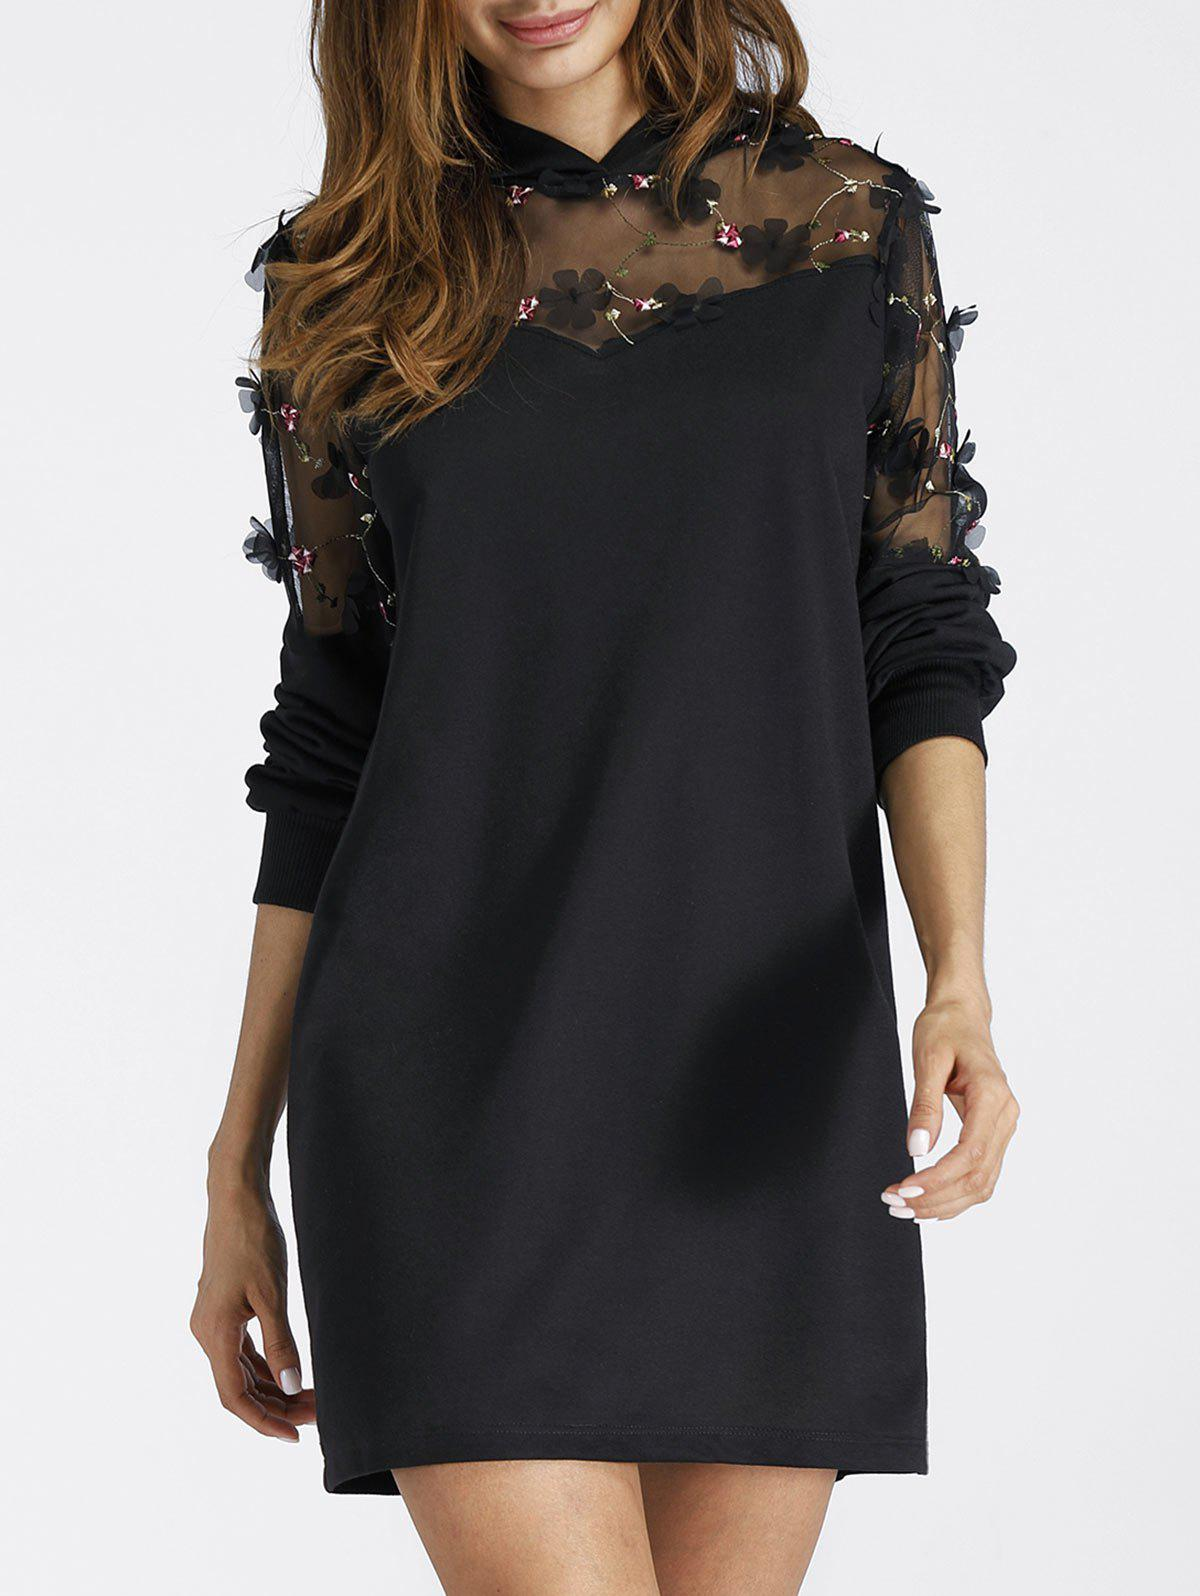 Embroidered Sheer Lace Insert Mini Hoodie DressWOMEN<br><br>Size: XL; Color: BLACK; Style: Casual; Material: Polyester; Silhouette: Shift; Dresses Length: Mini; Neckline: Hooded; Sleeve Length: Long Sleeves; Pattern Type: Patchwork; With Belt: No; Season: Fall,Spring; Weight: 0.3500kg; Package Contents: 1 x Dress; Occasion: Casual;